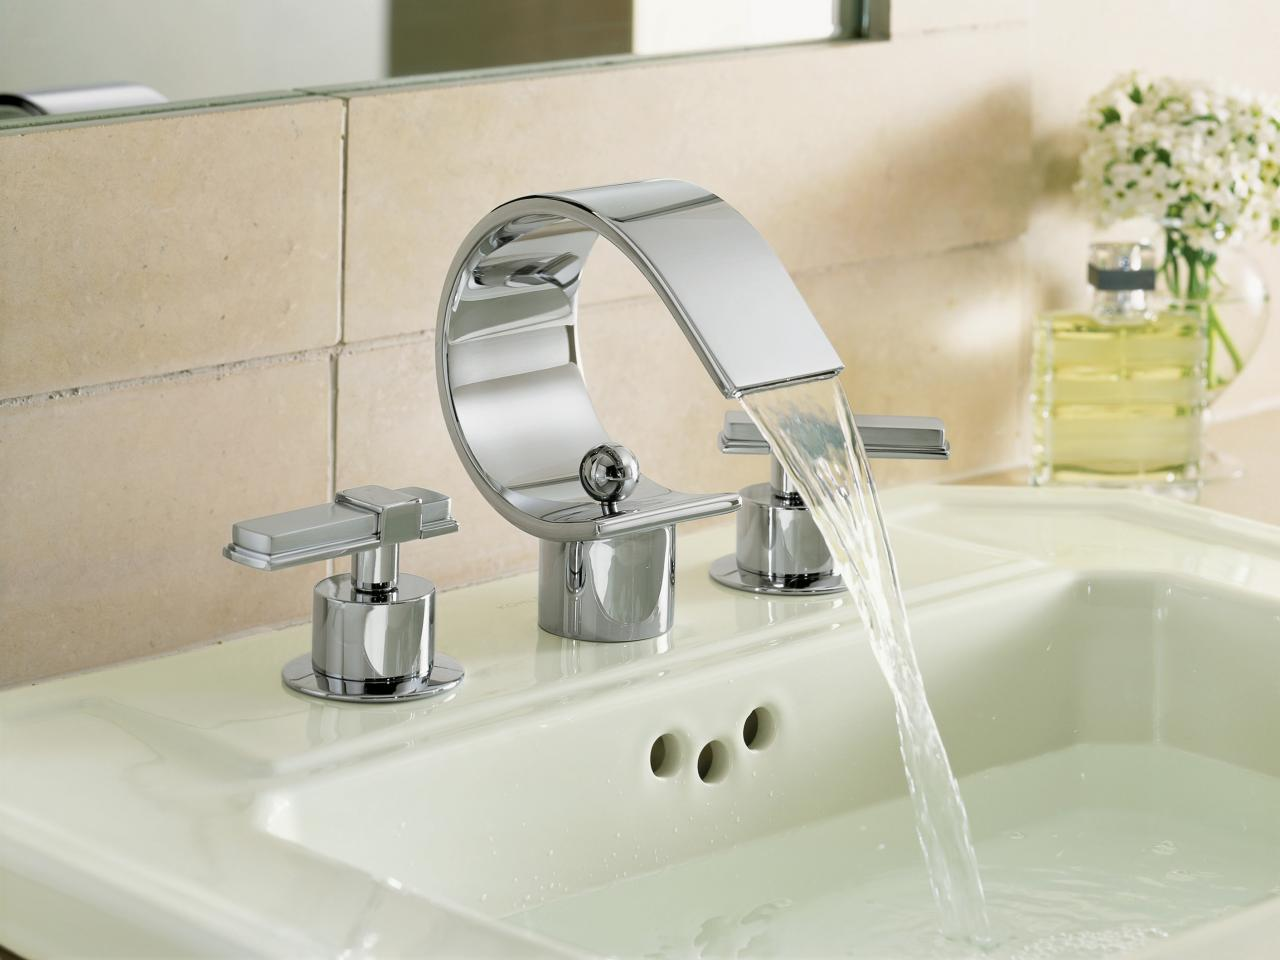 Awesome Fancy Sink Using Stainless Steel Curve Modern Bathroom Faucets Design